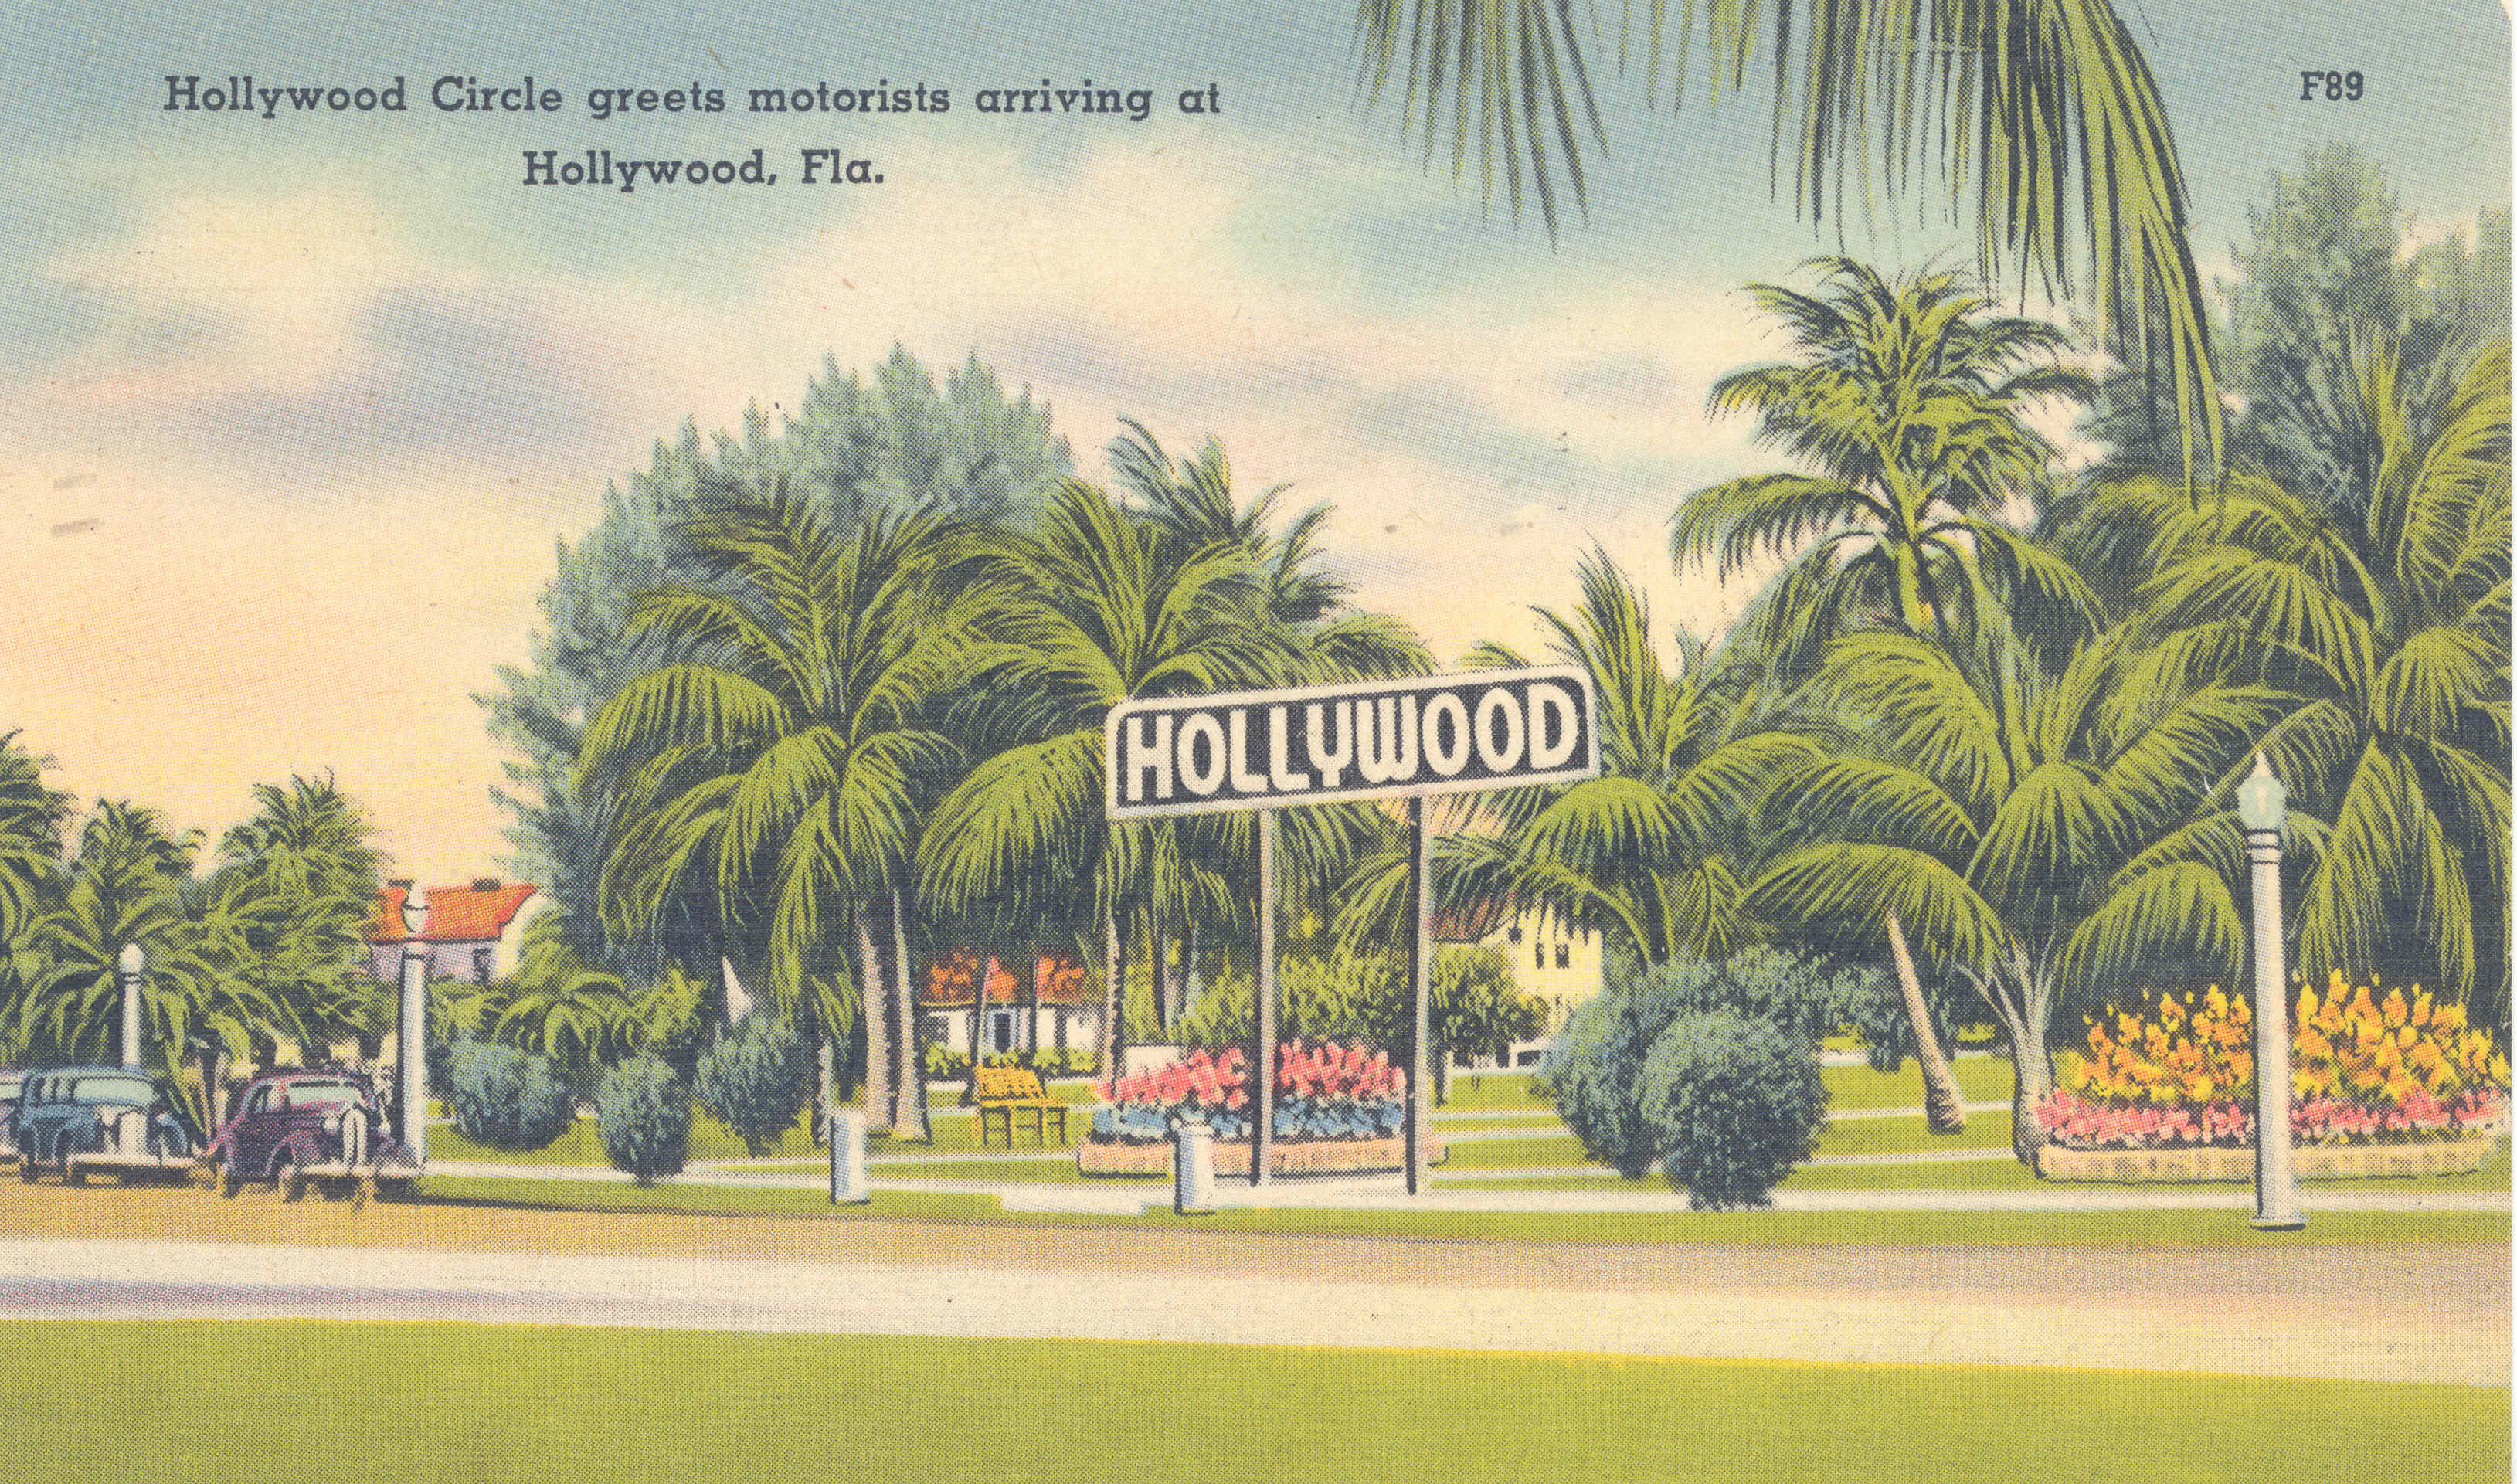 Hollywood Circle greets arriving motorists